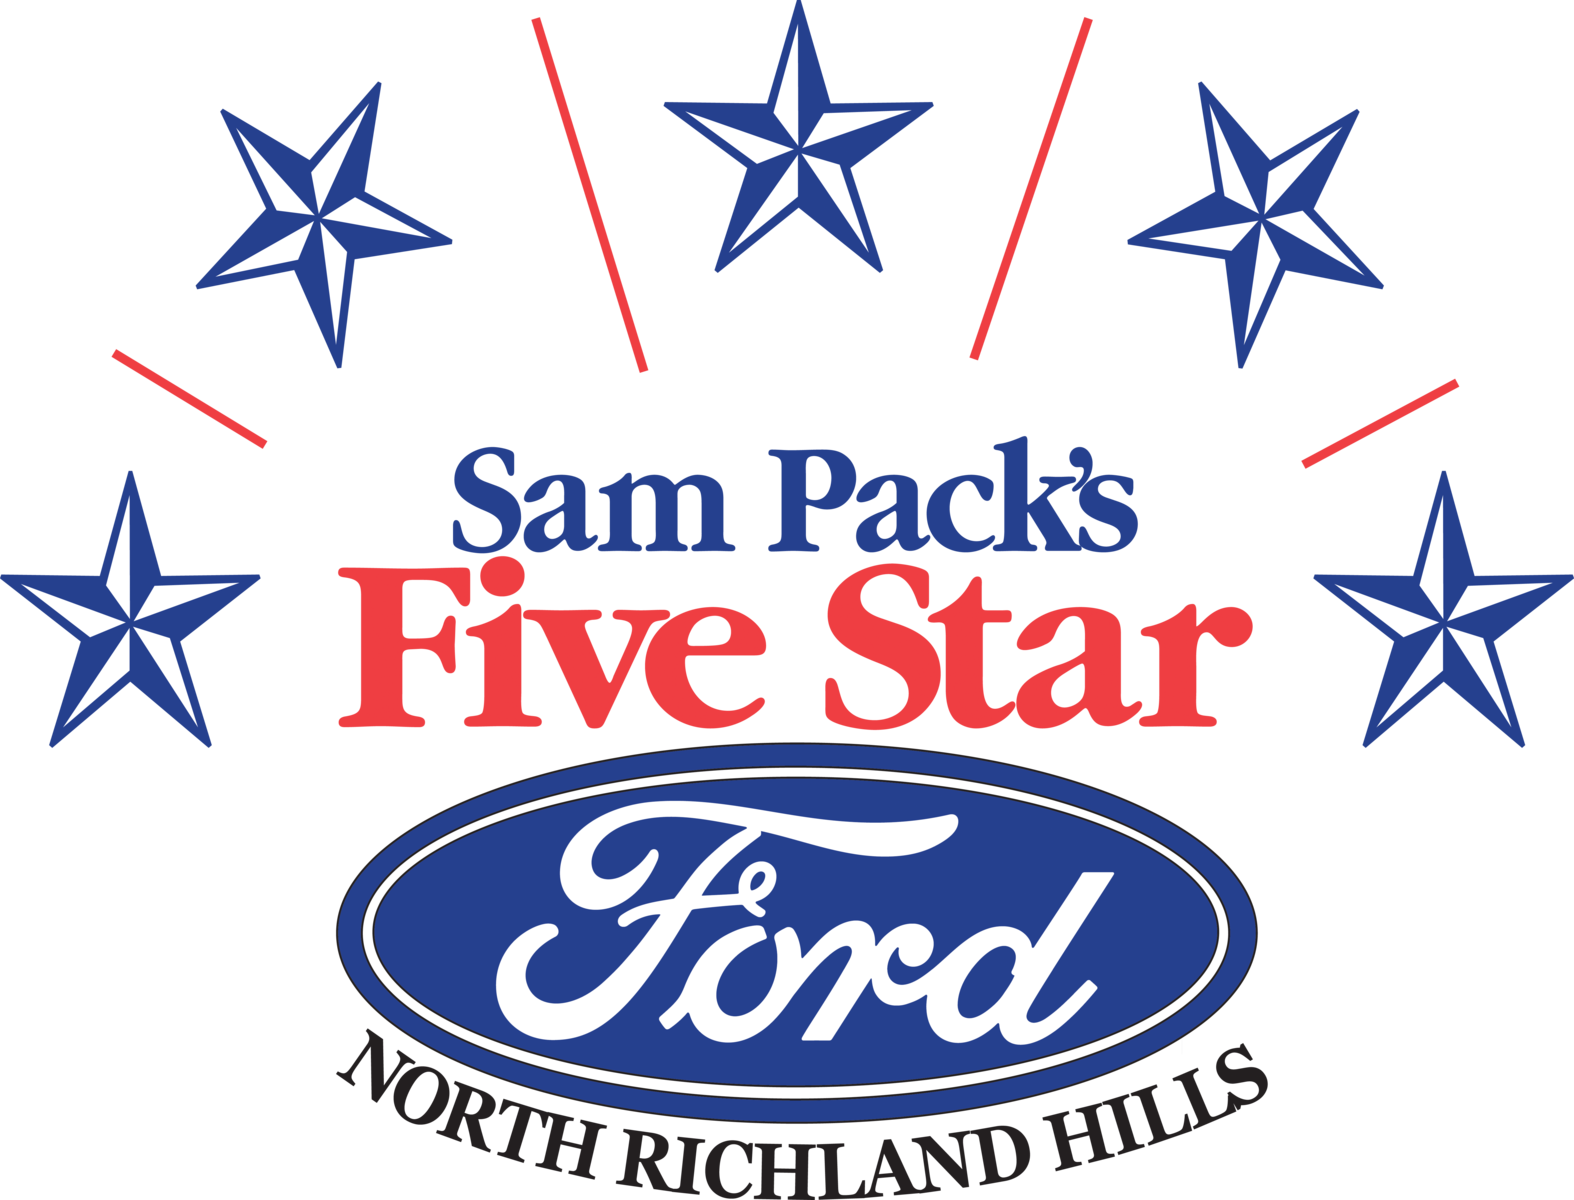 Five Star Ford North Richland Hills - North Richland Hills